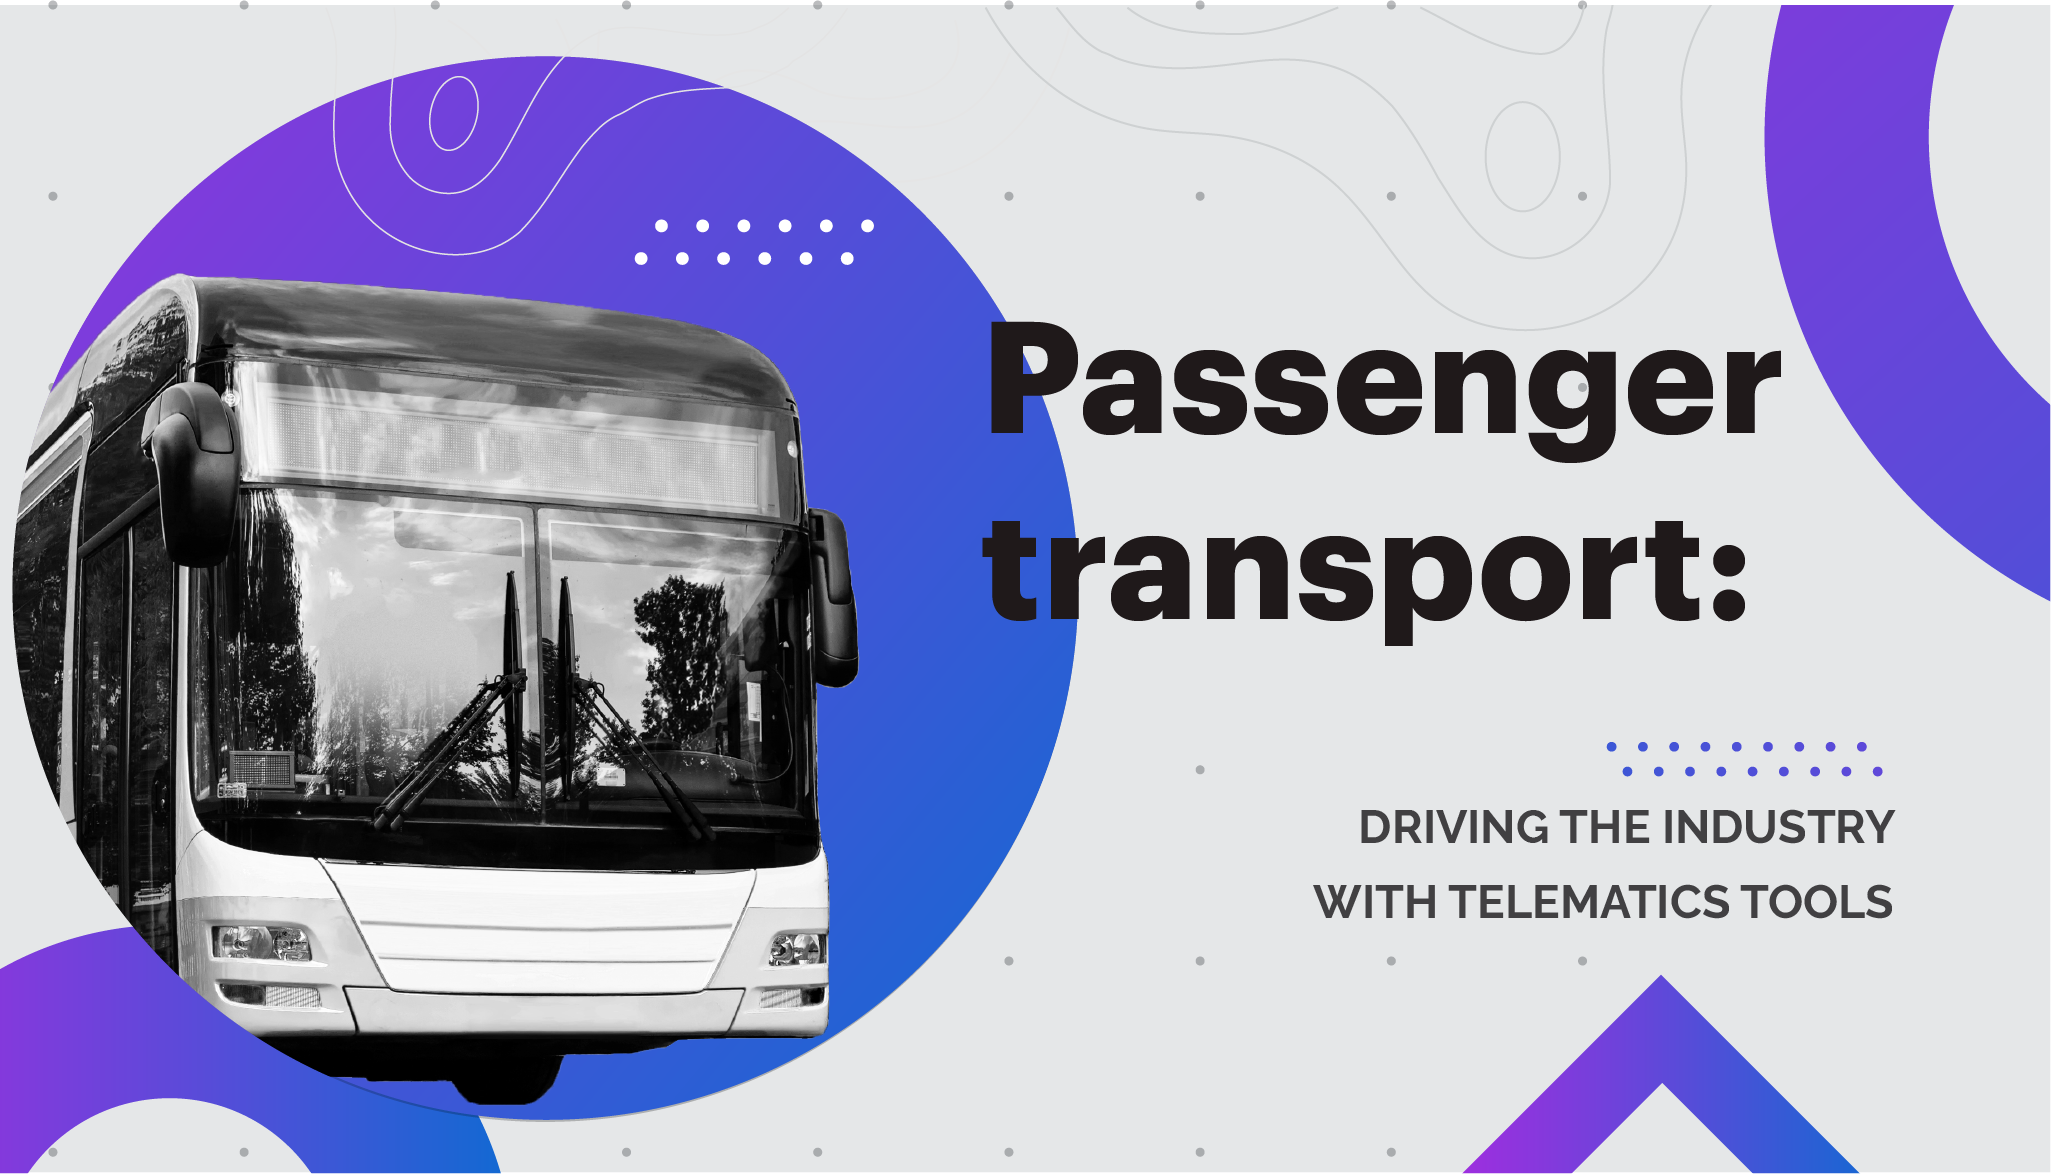 Passenger transport: driving the industry with telematics tools